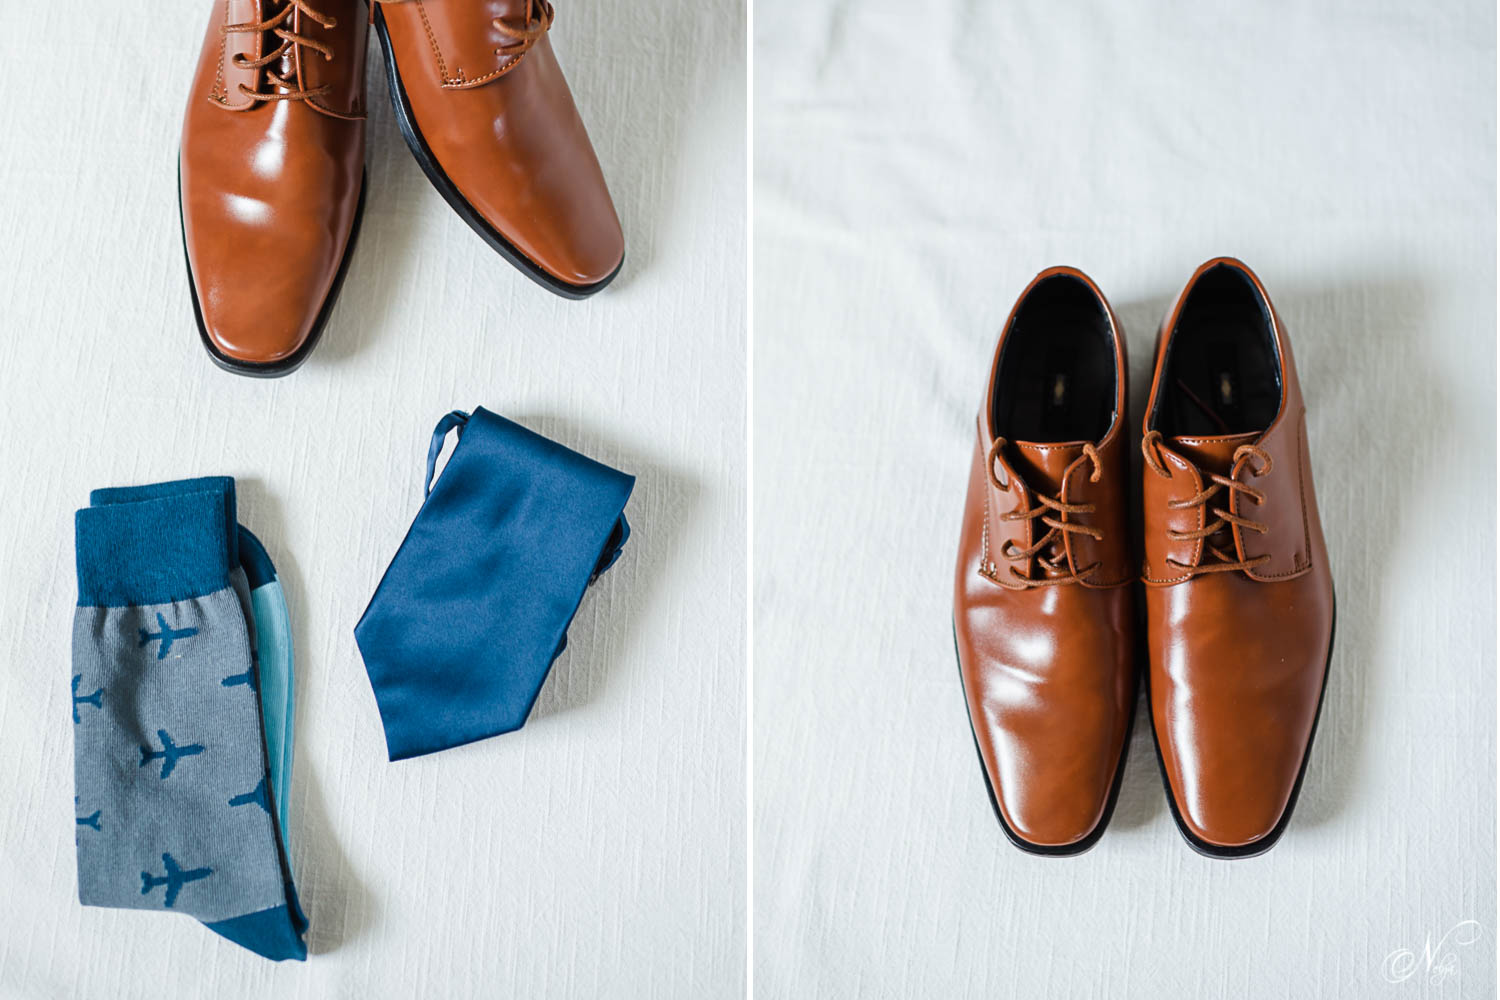 brown leather men's dress shoes, blue men's socks with airplaines on them and navy blue necktie.